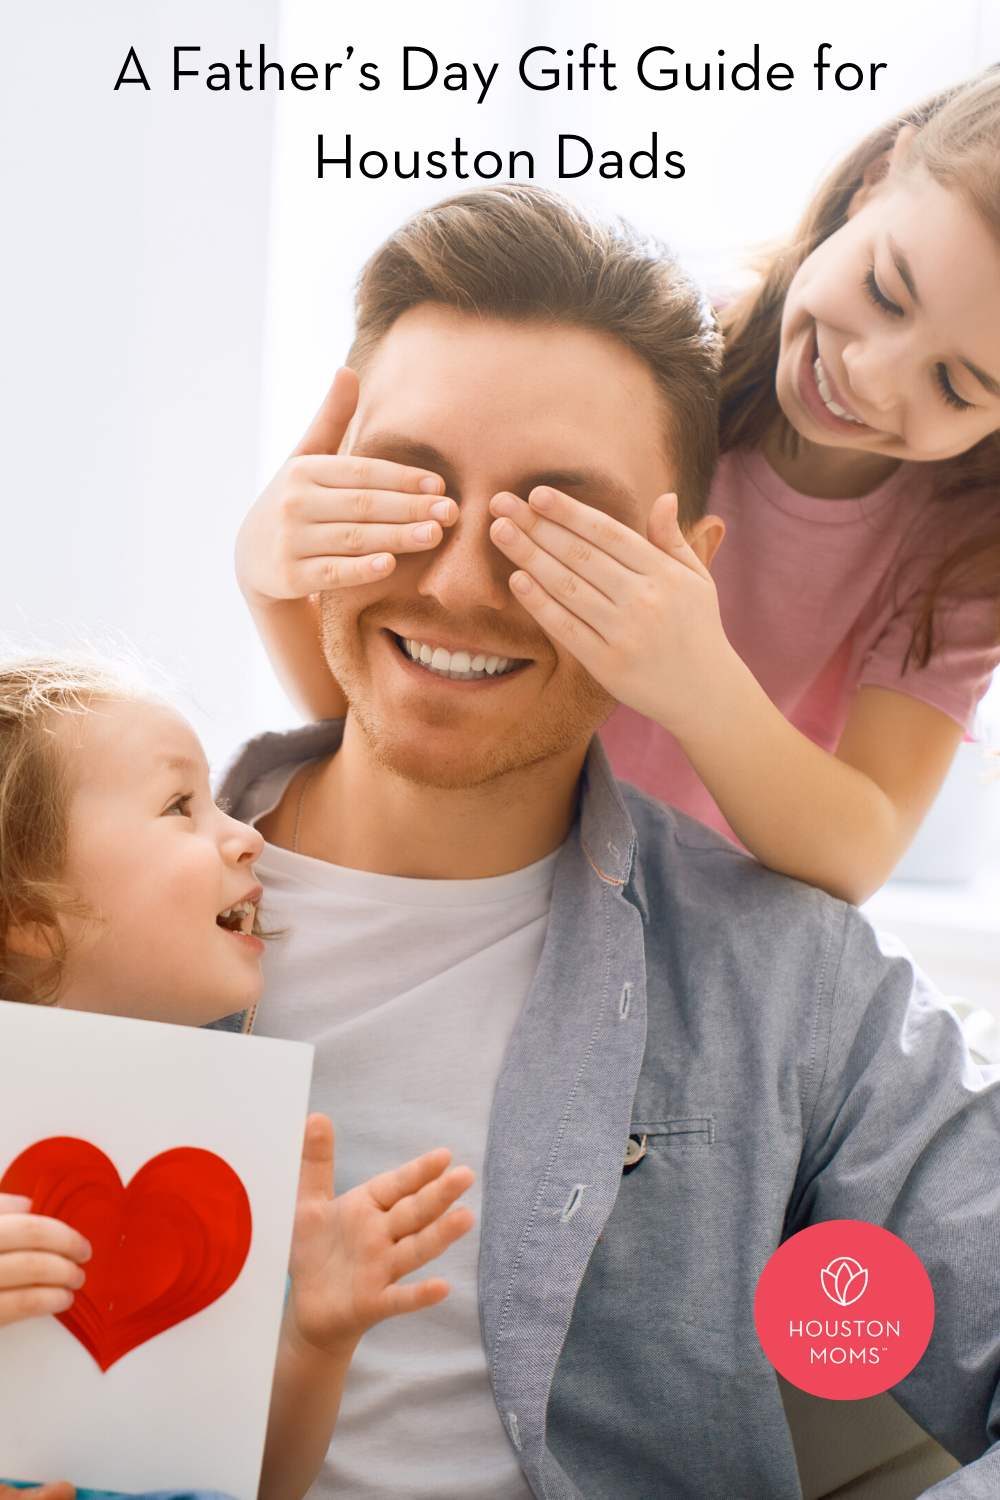 """Houston Moms """"A Father's Day Gift Guide for Houston Dads"""" #houstonmoms #houstonmomsblog #momsaroundhouston"""